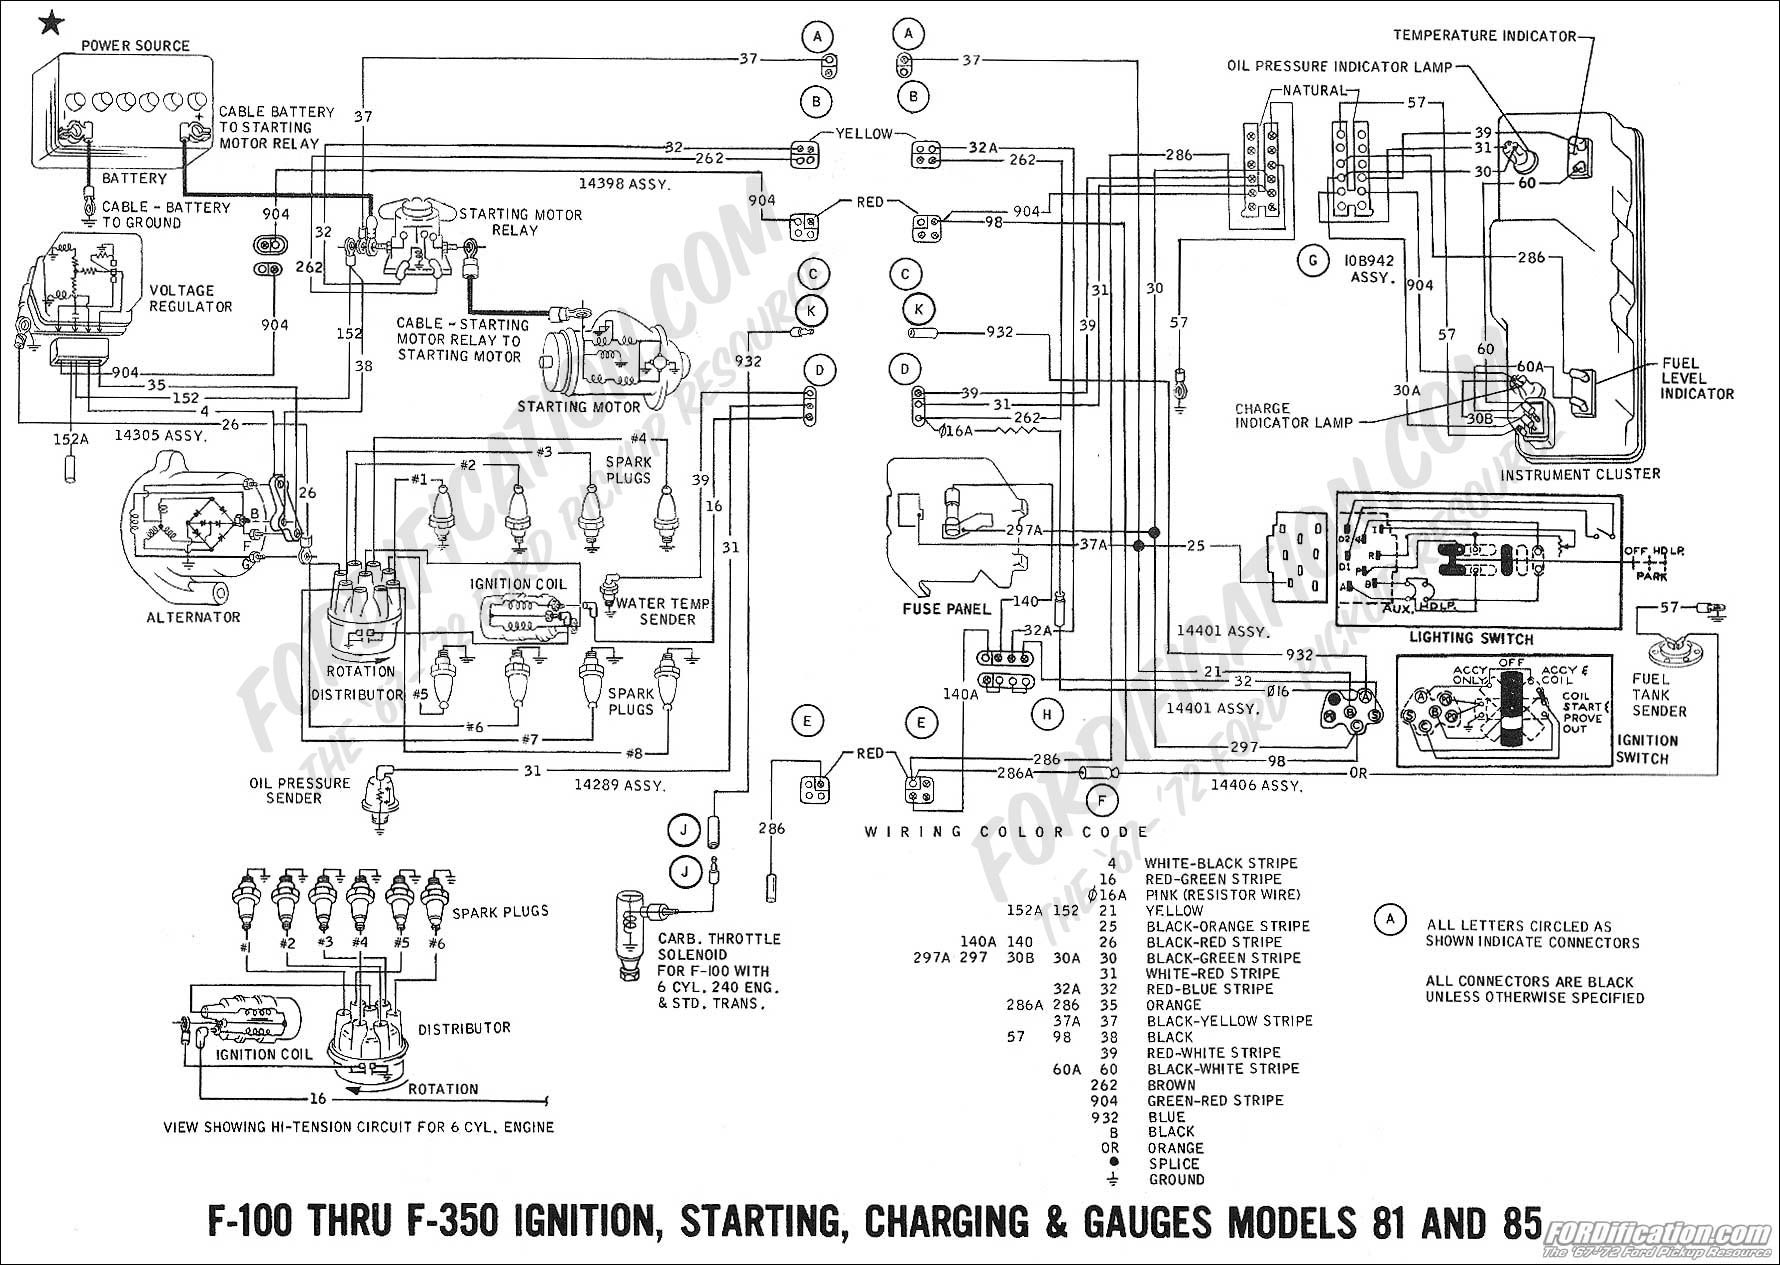 Wrg Ford Mustang V6 Fuse Box Diagram